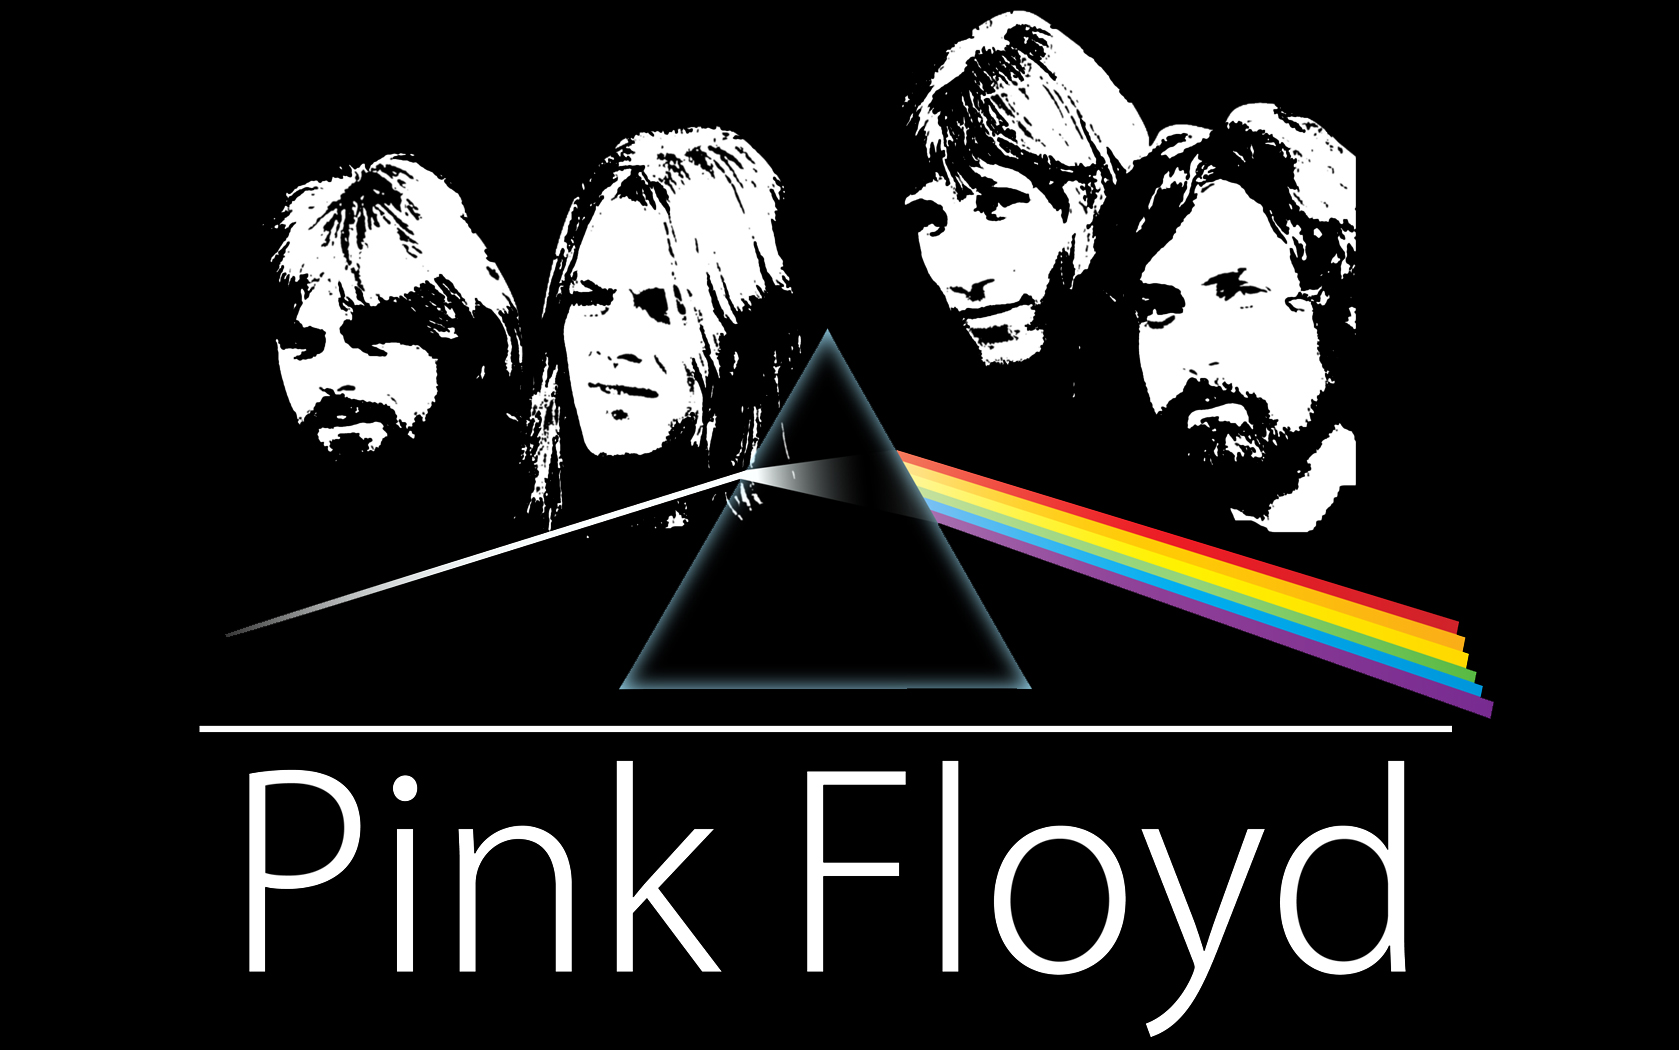 Pink Floyd Wallpaper Hd Celeb Wallpapers Wallpapers Of